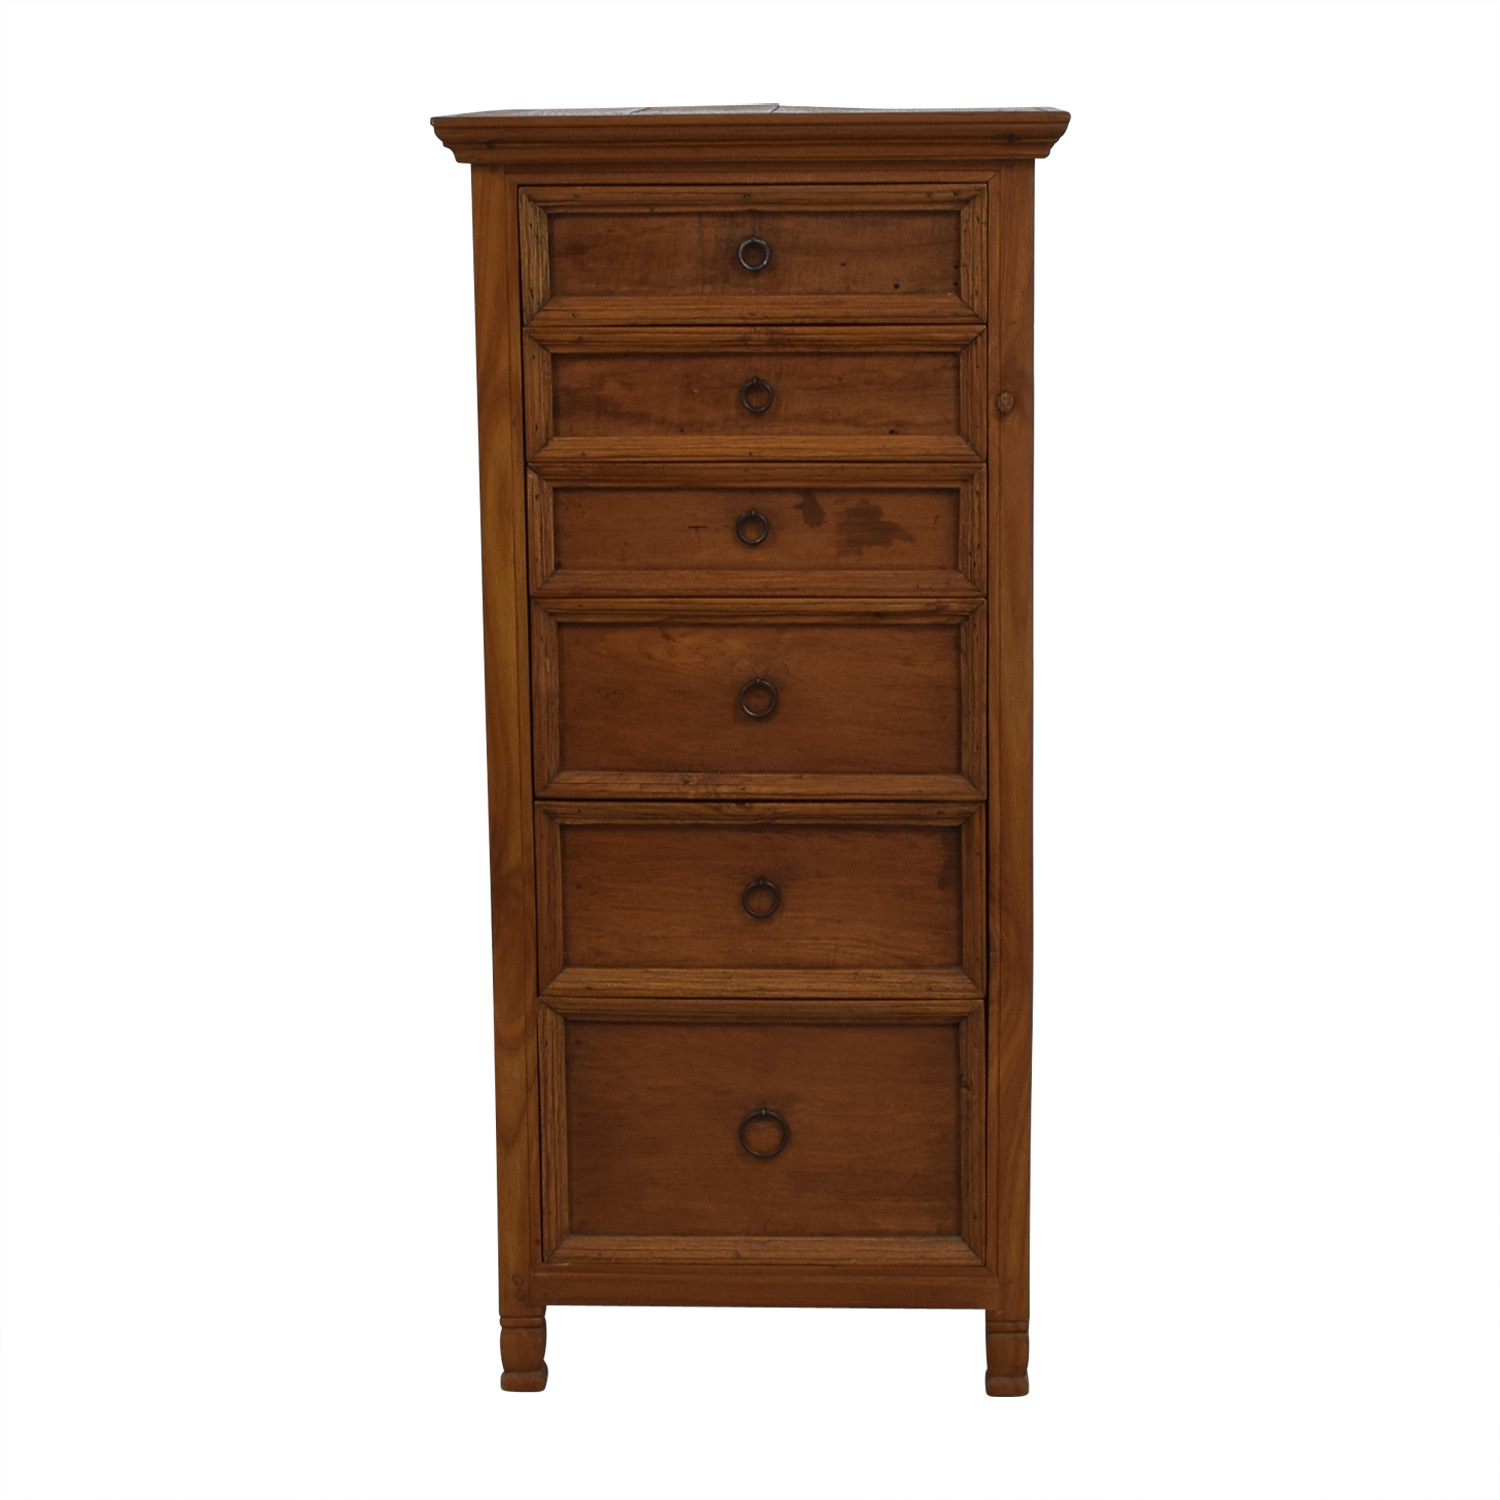 Tall wooden dresser bestdressers